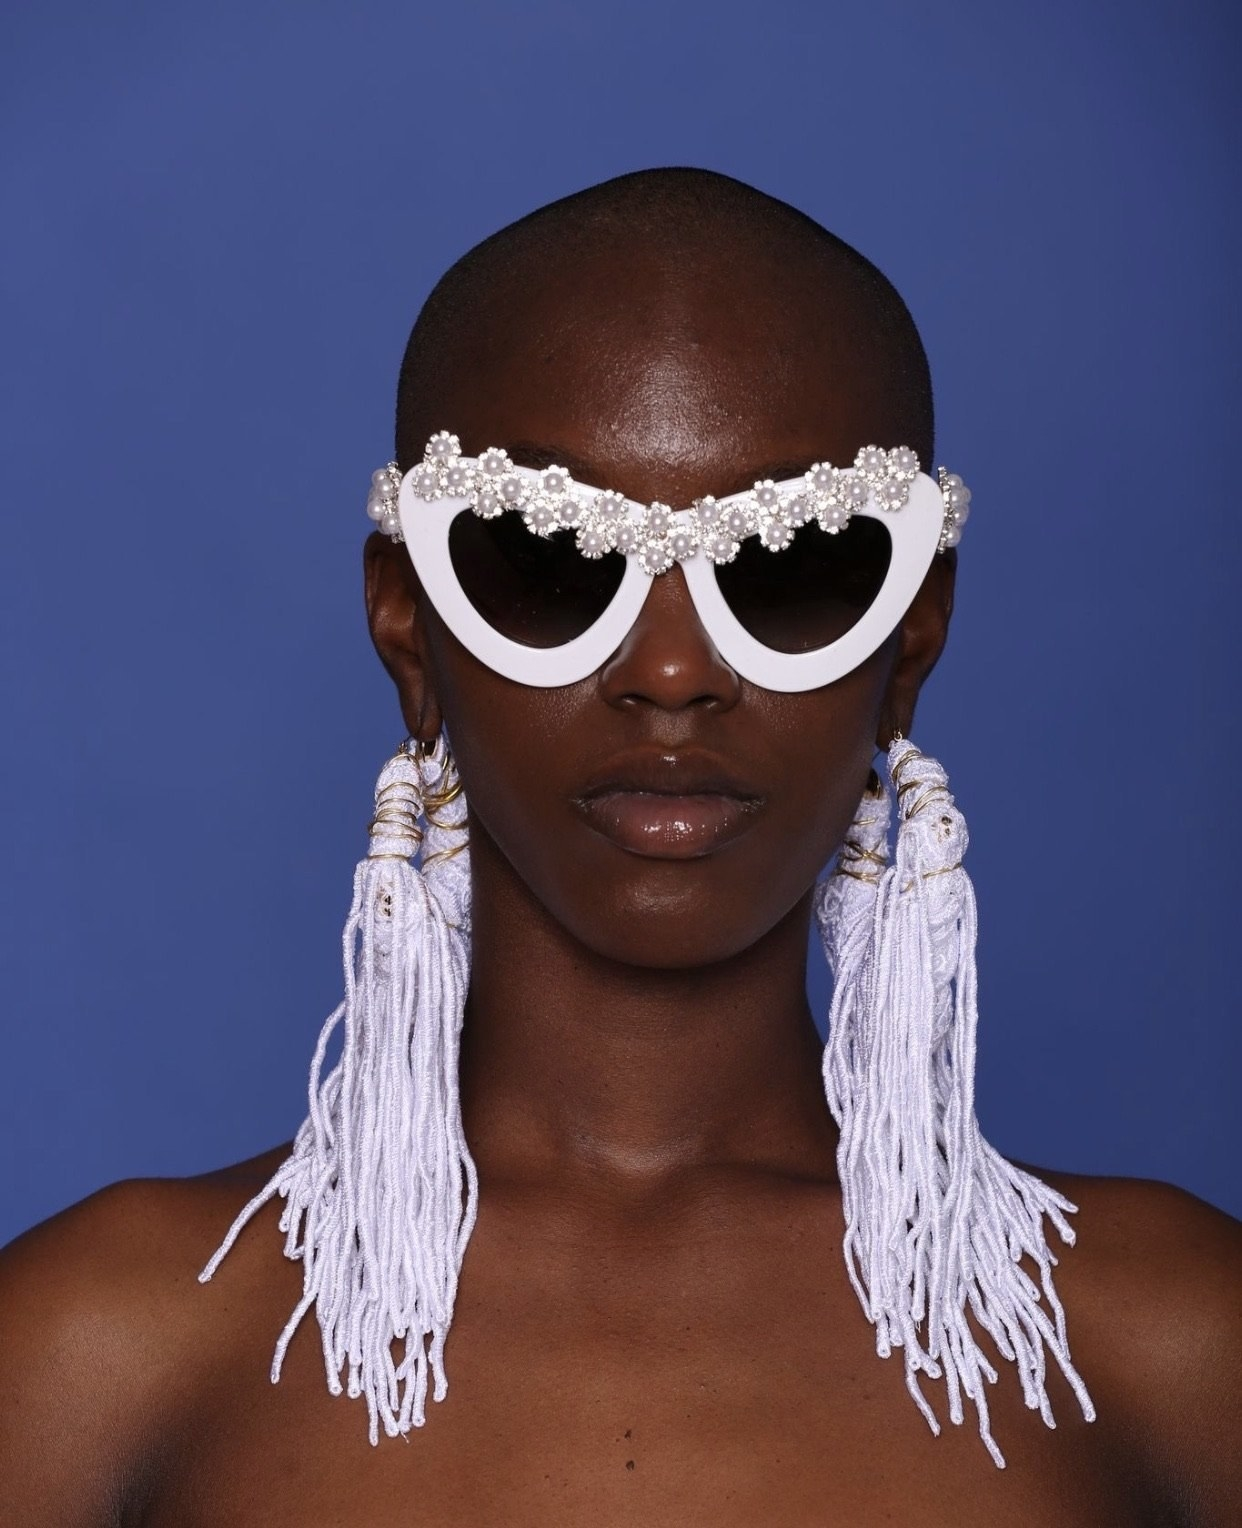 Model wearing the sunglasses in white with small pearl flowers encrusted across the top and on the arms